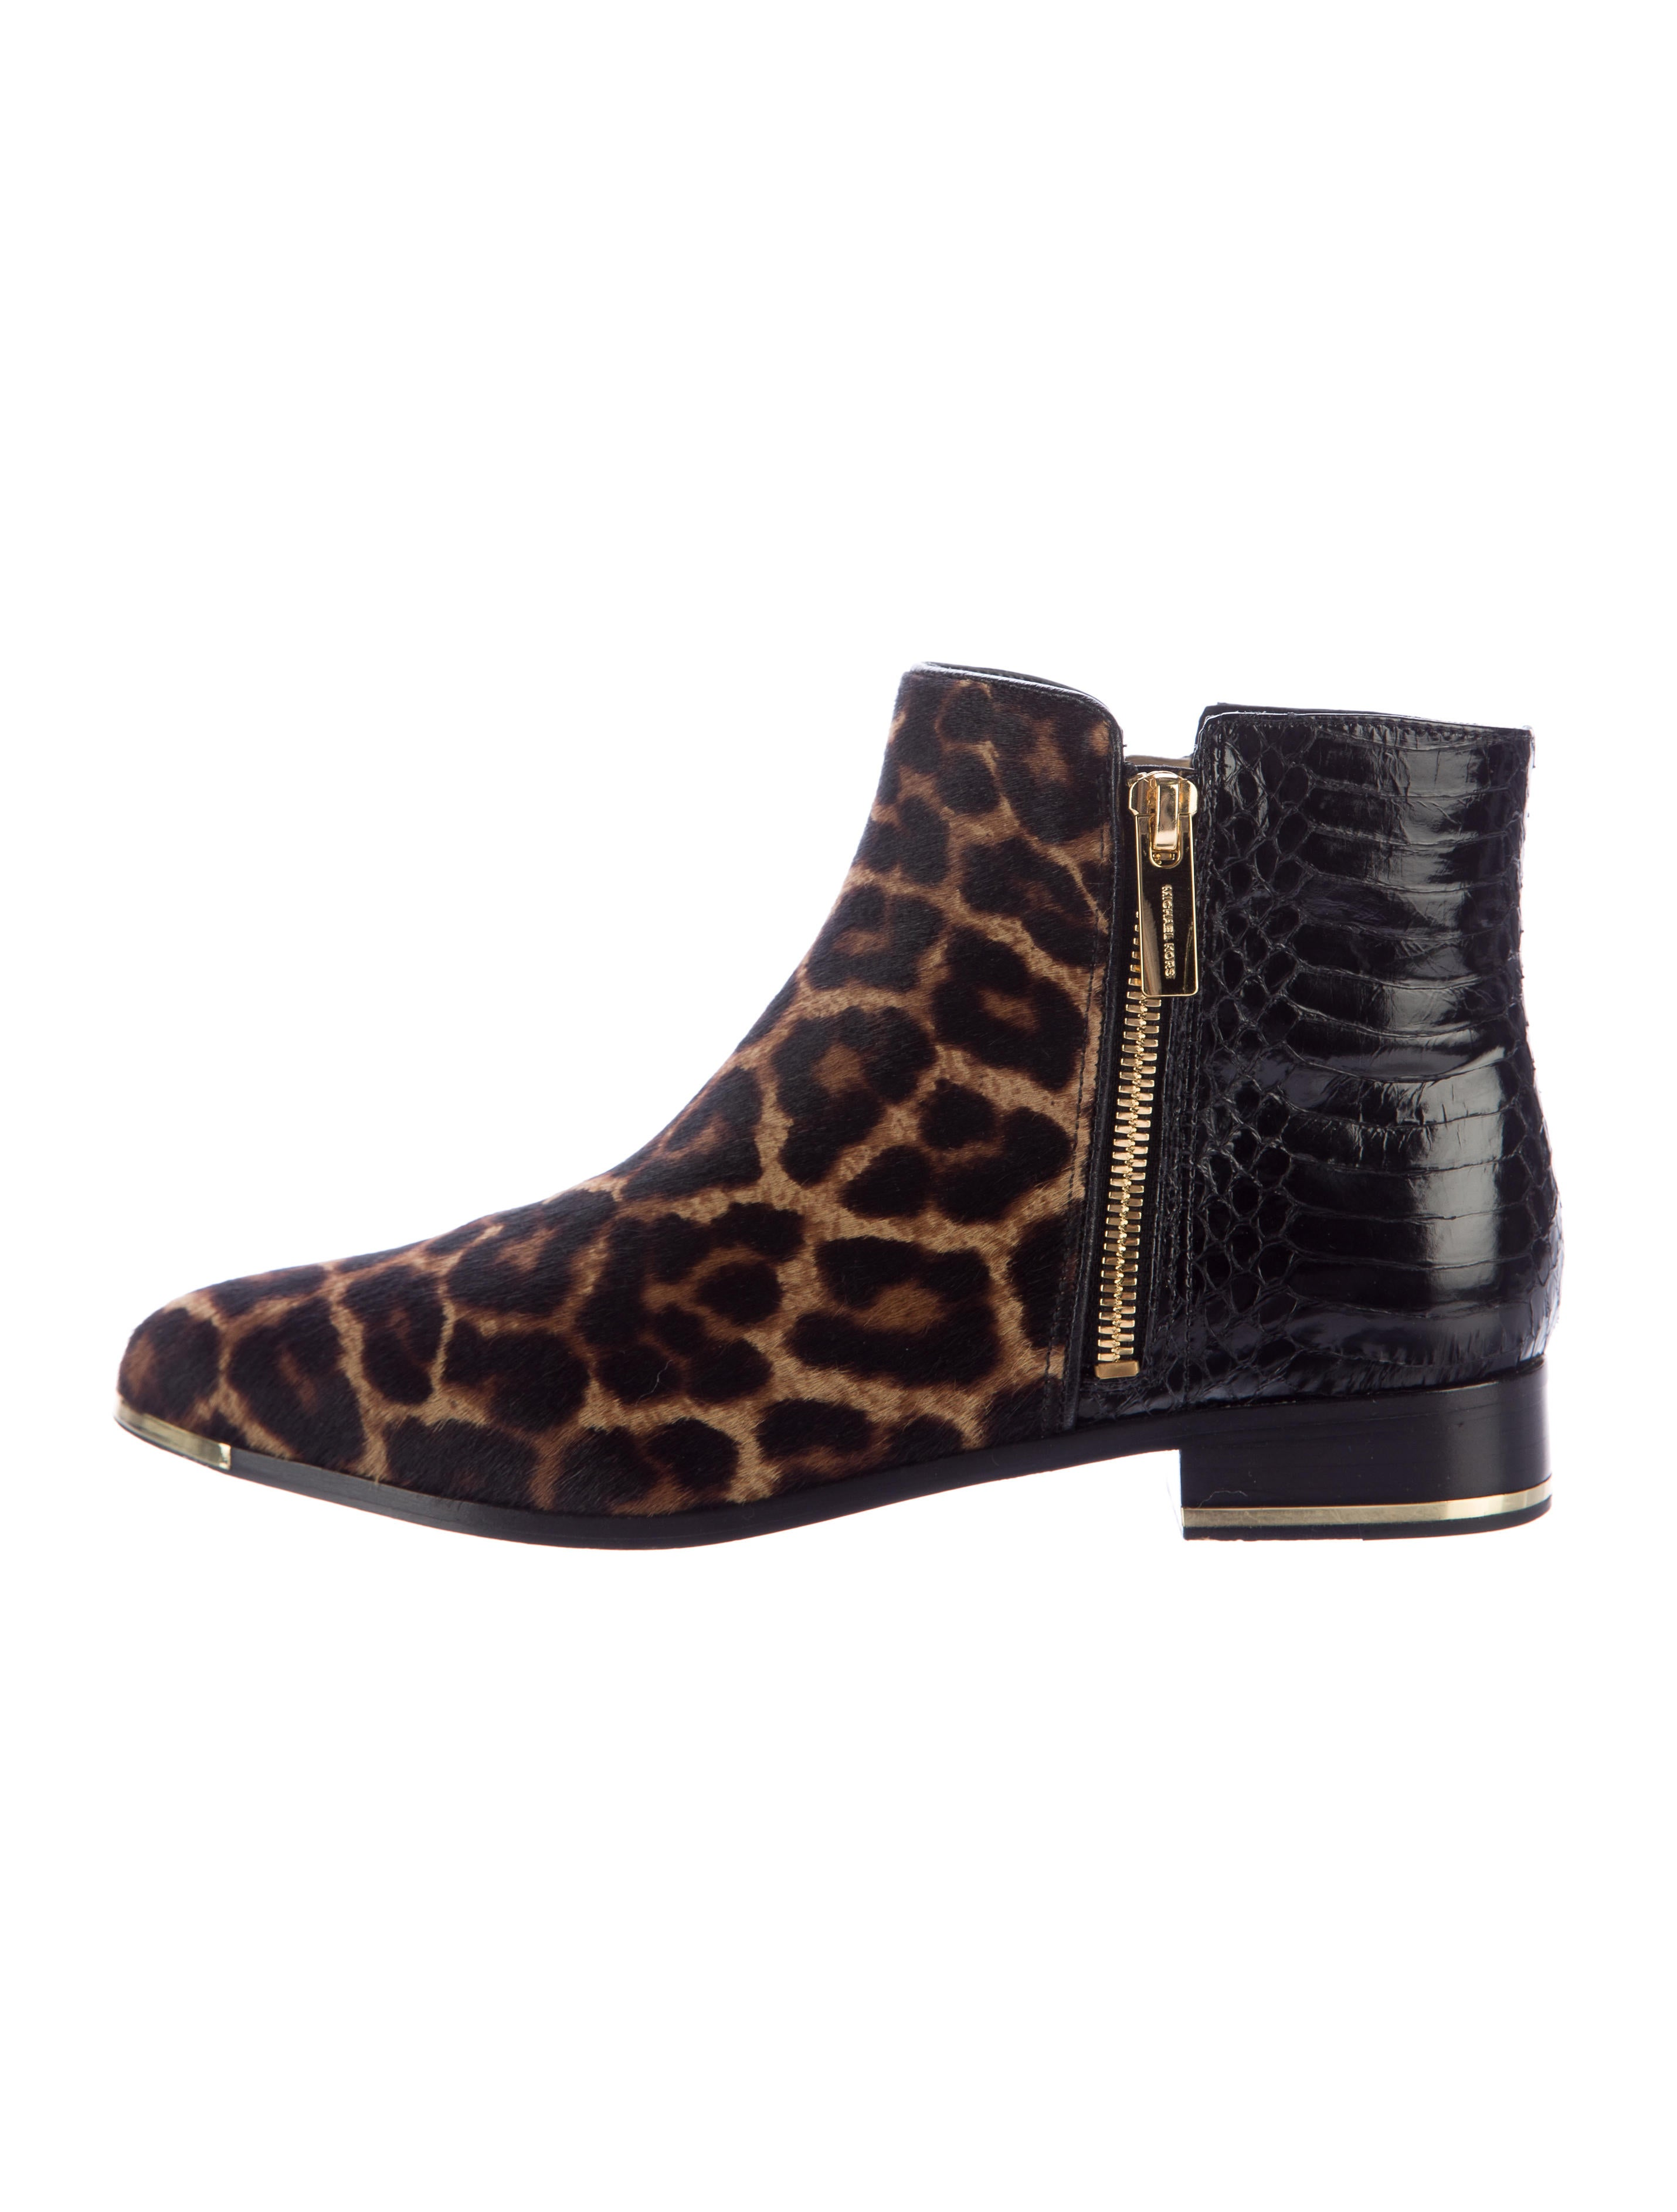 michael kors collection cindra leopard print ankle boots